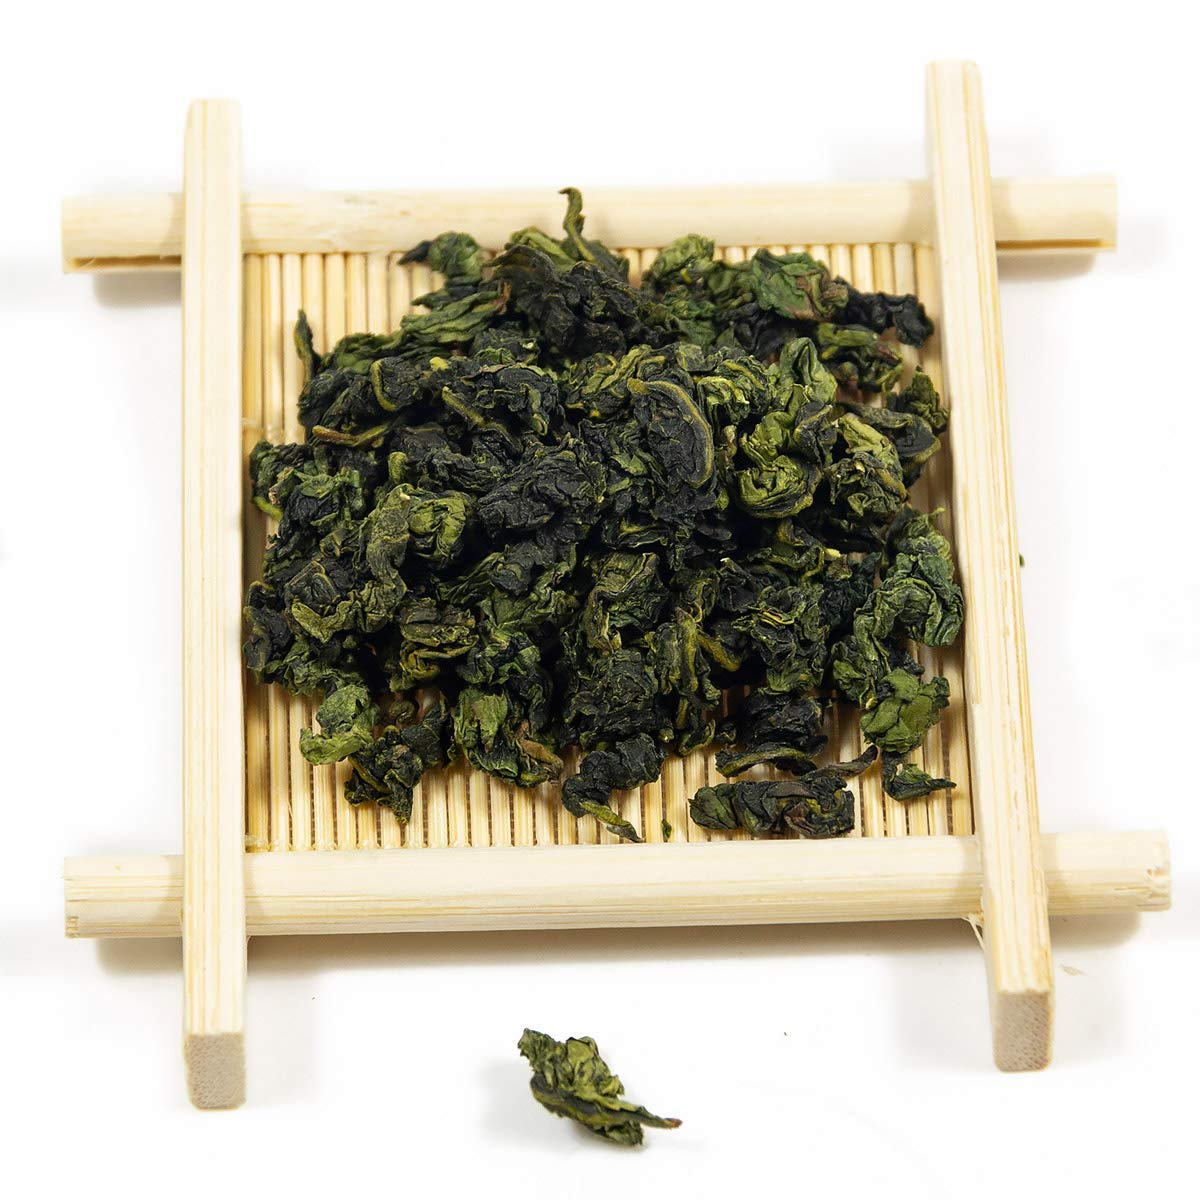 Oriarm 250g / 8.82oz Anxi Tie Guan Yin Oolong Tea Loose Leaf - Chinese Iron Goddess of Mercy Oolong Green Tea Leaves - Naturally High Mountain Grown